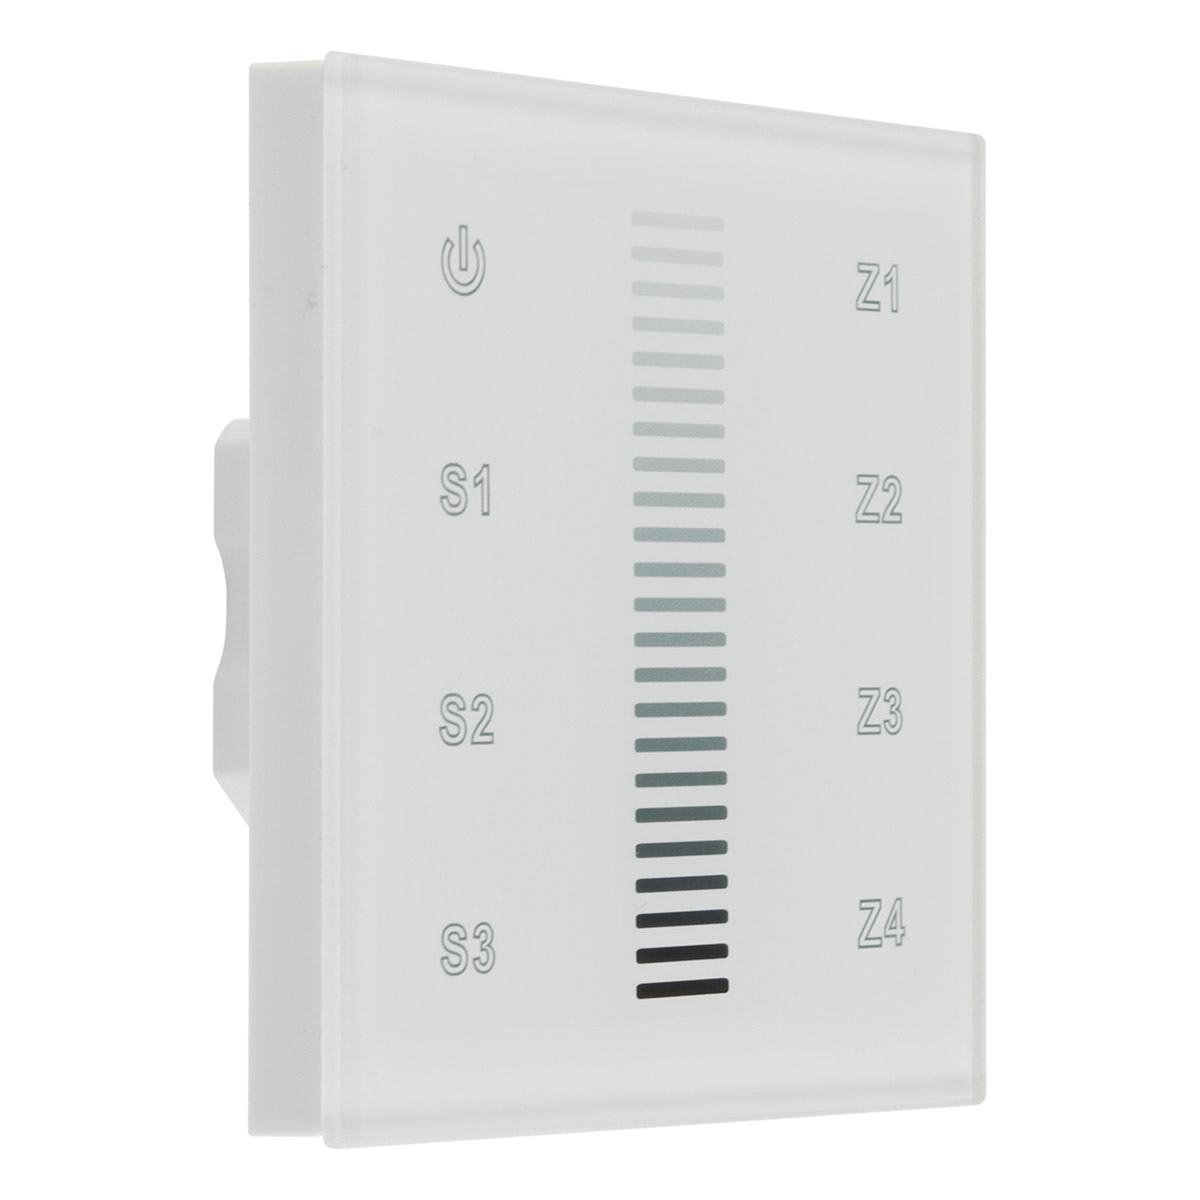 Funk dimmer wandpanel 4 kanal 868mhz touch bedienfeld for Koch 4 kanal funk dimmer